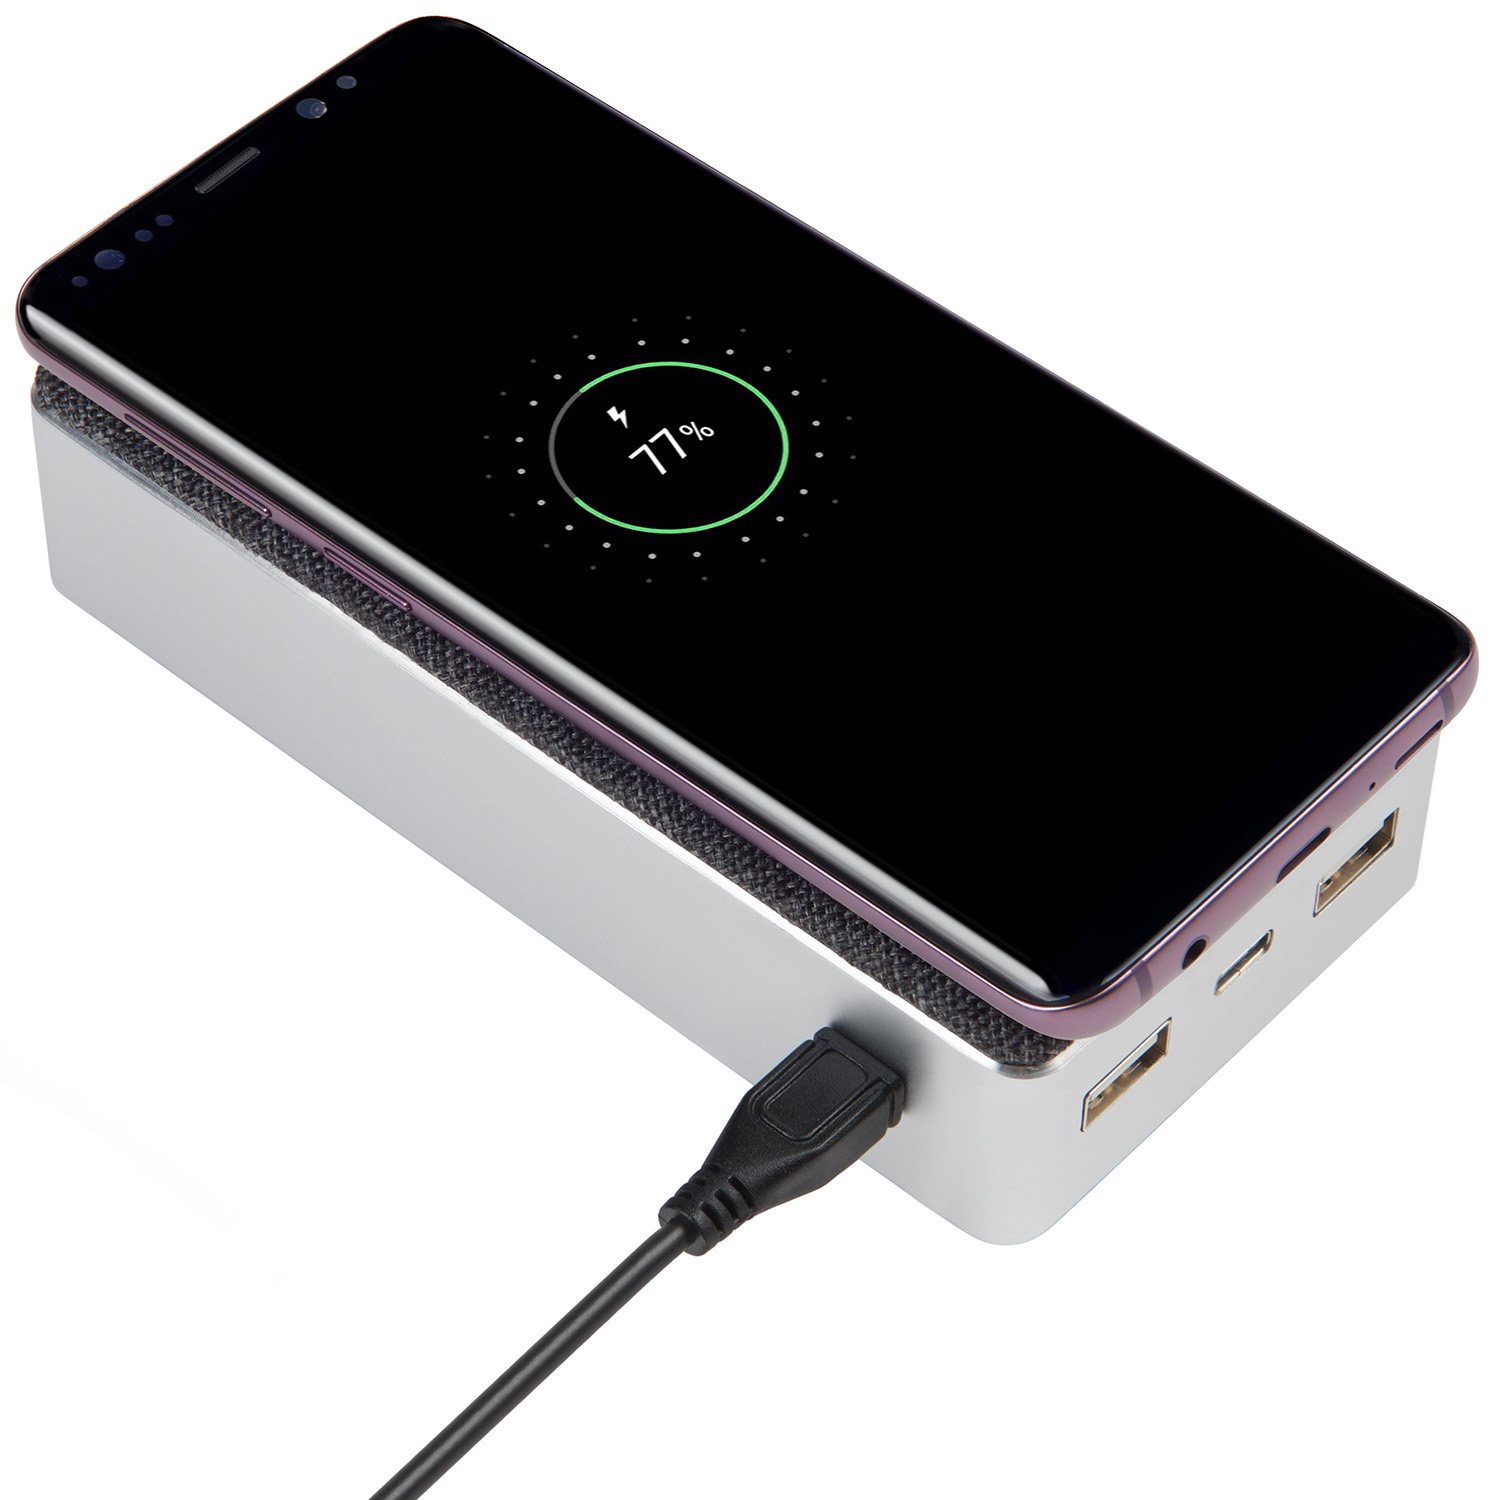 Oryginalna bateria ładowarka Xtorm Wireless Power Bank Motion 16000mAh